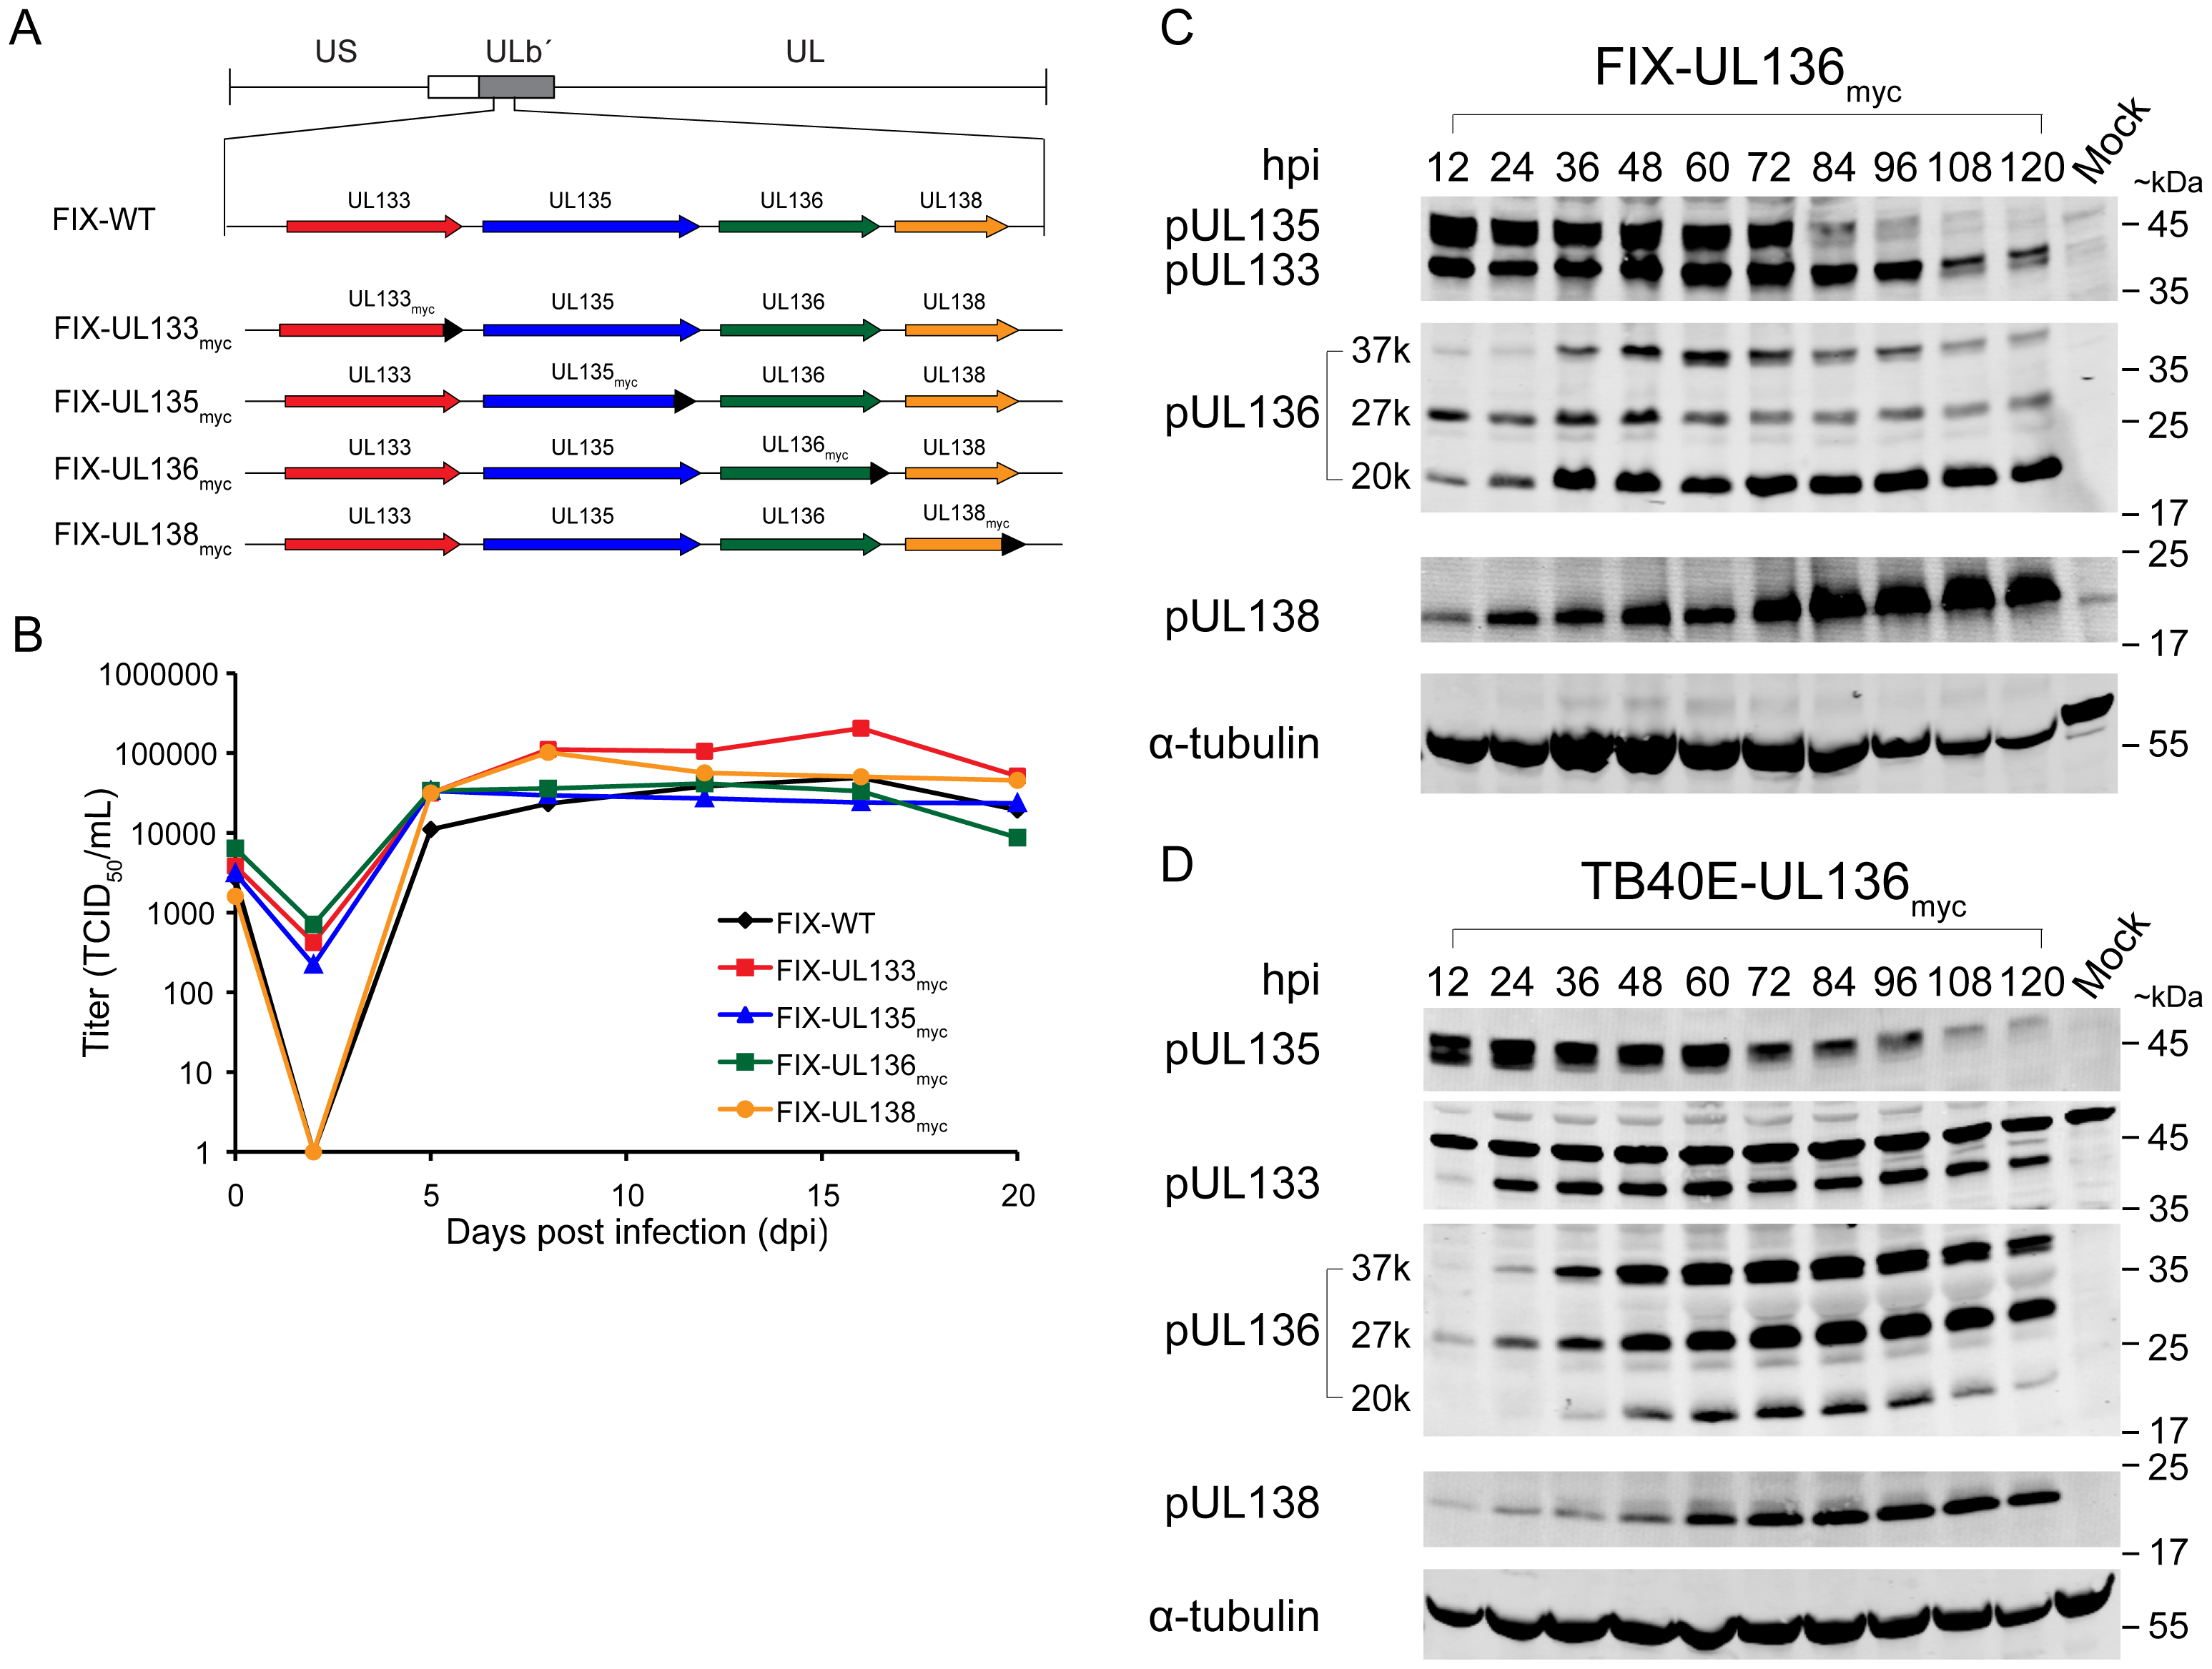 Construction and characterization of recombinant viruses expressing myc tagged ORFs.